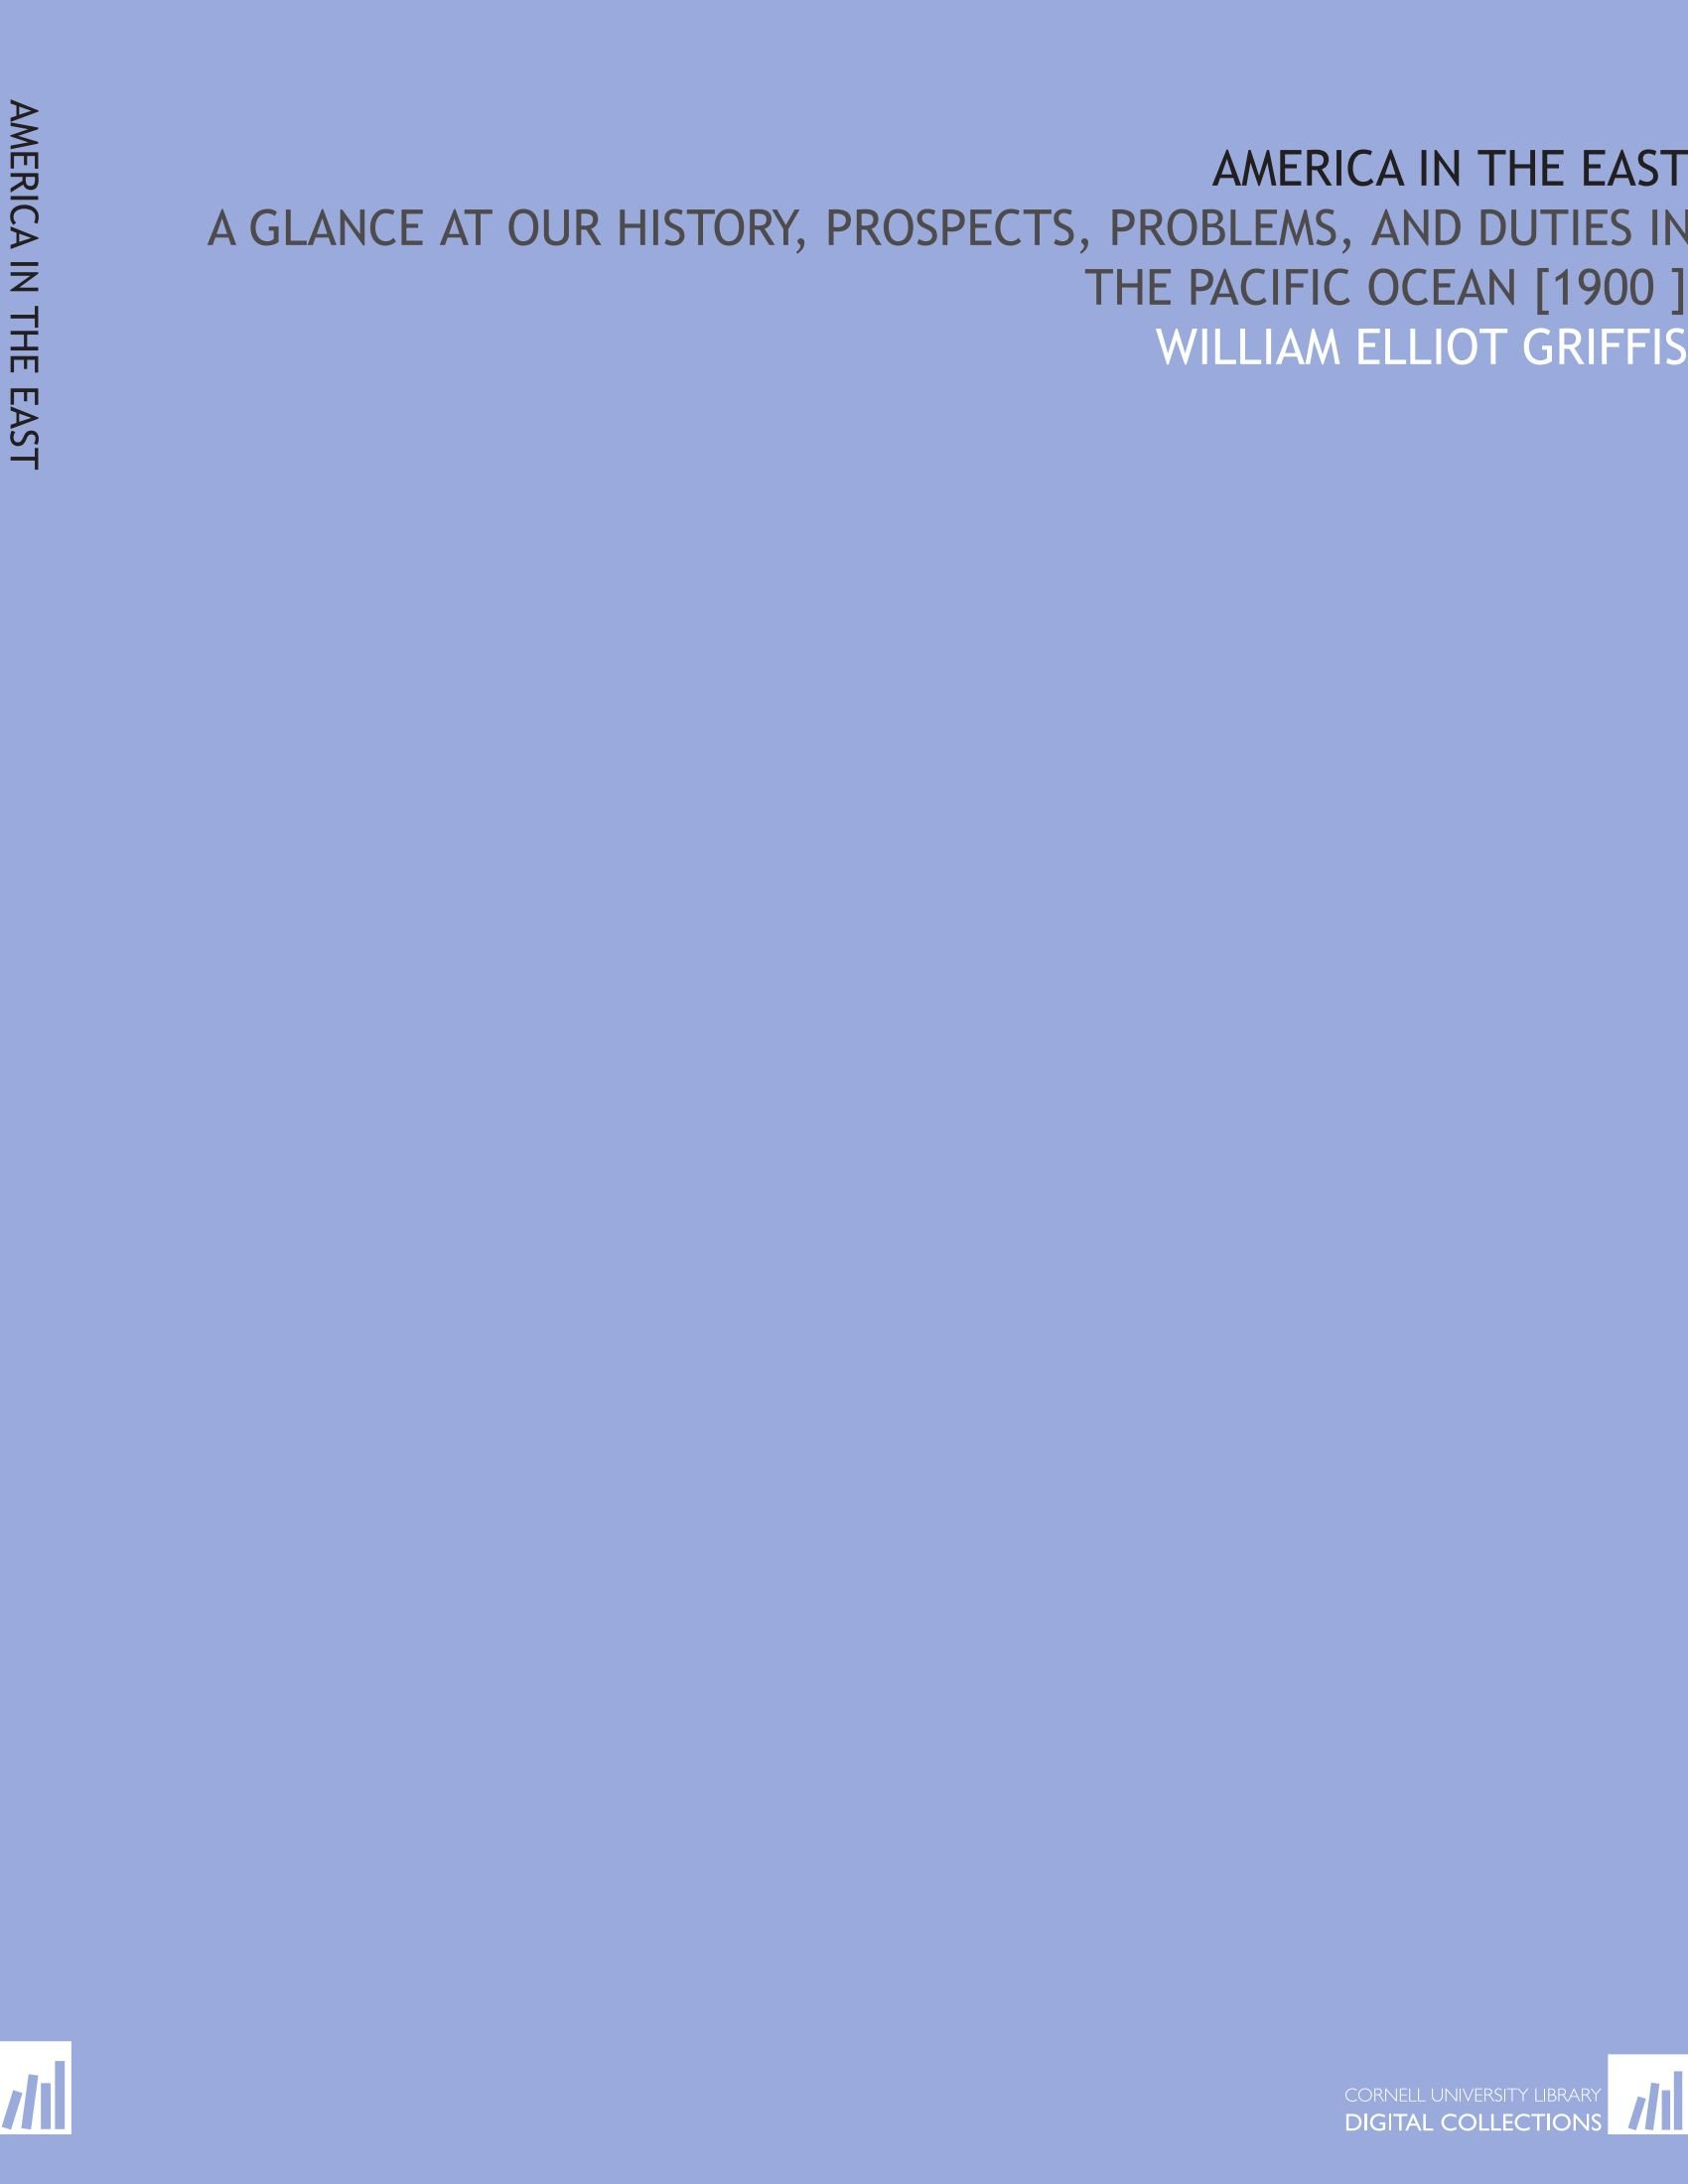 Download America in the East: A Glance at Our History, Prospects, Problems, and Duties in the Pacific Ocean [1900 ] PDF